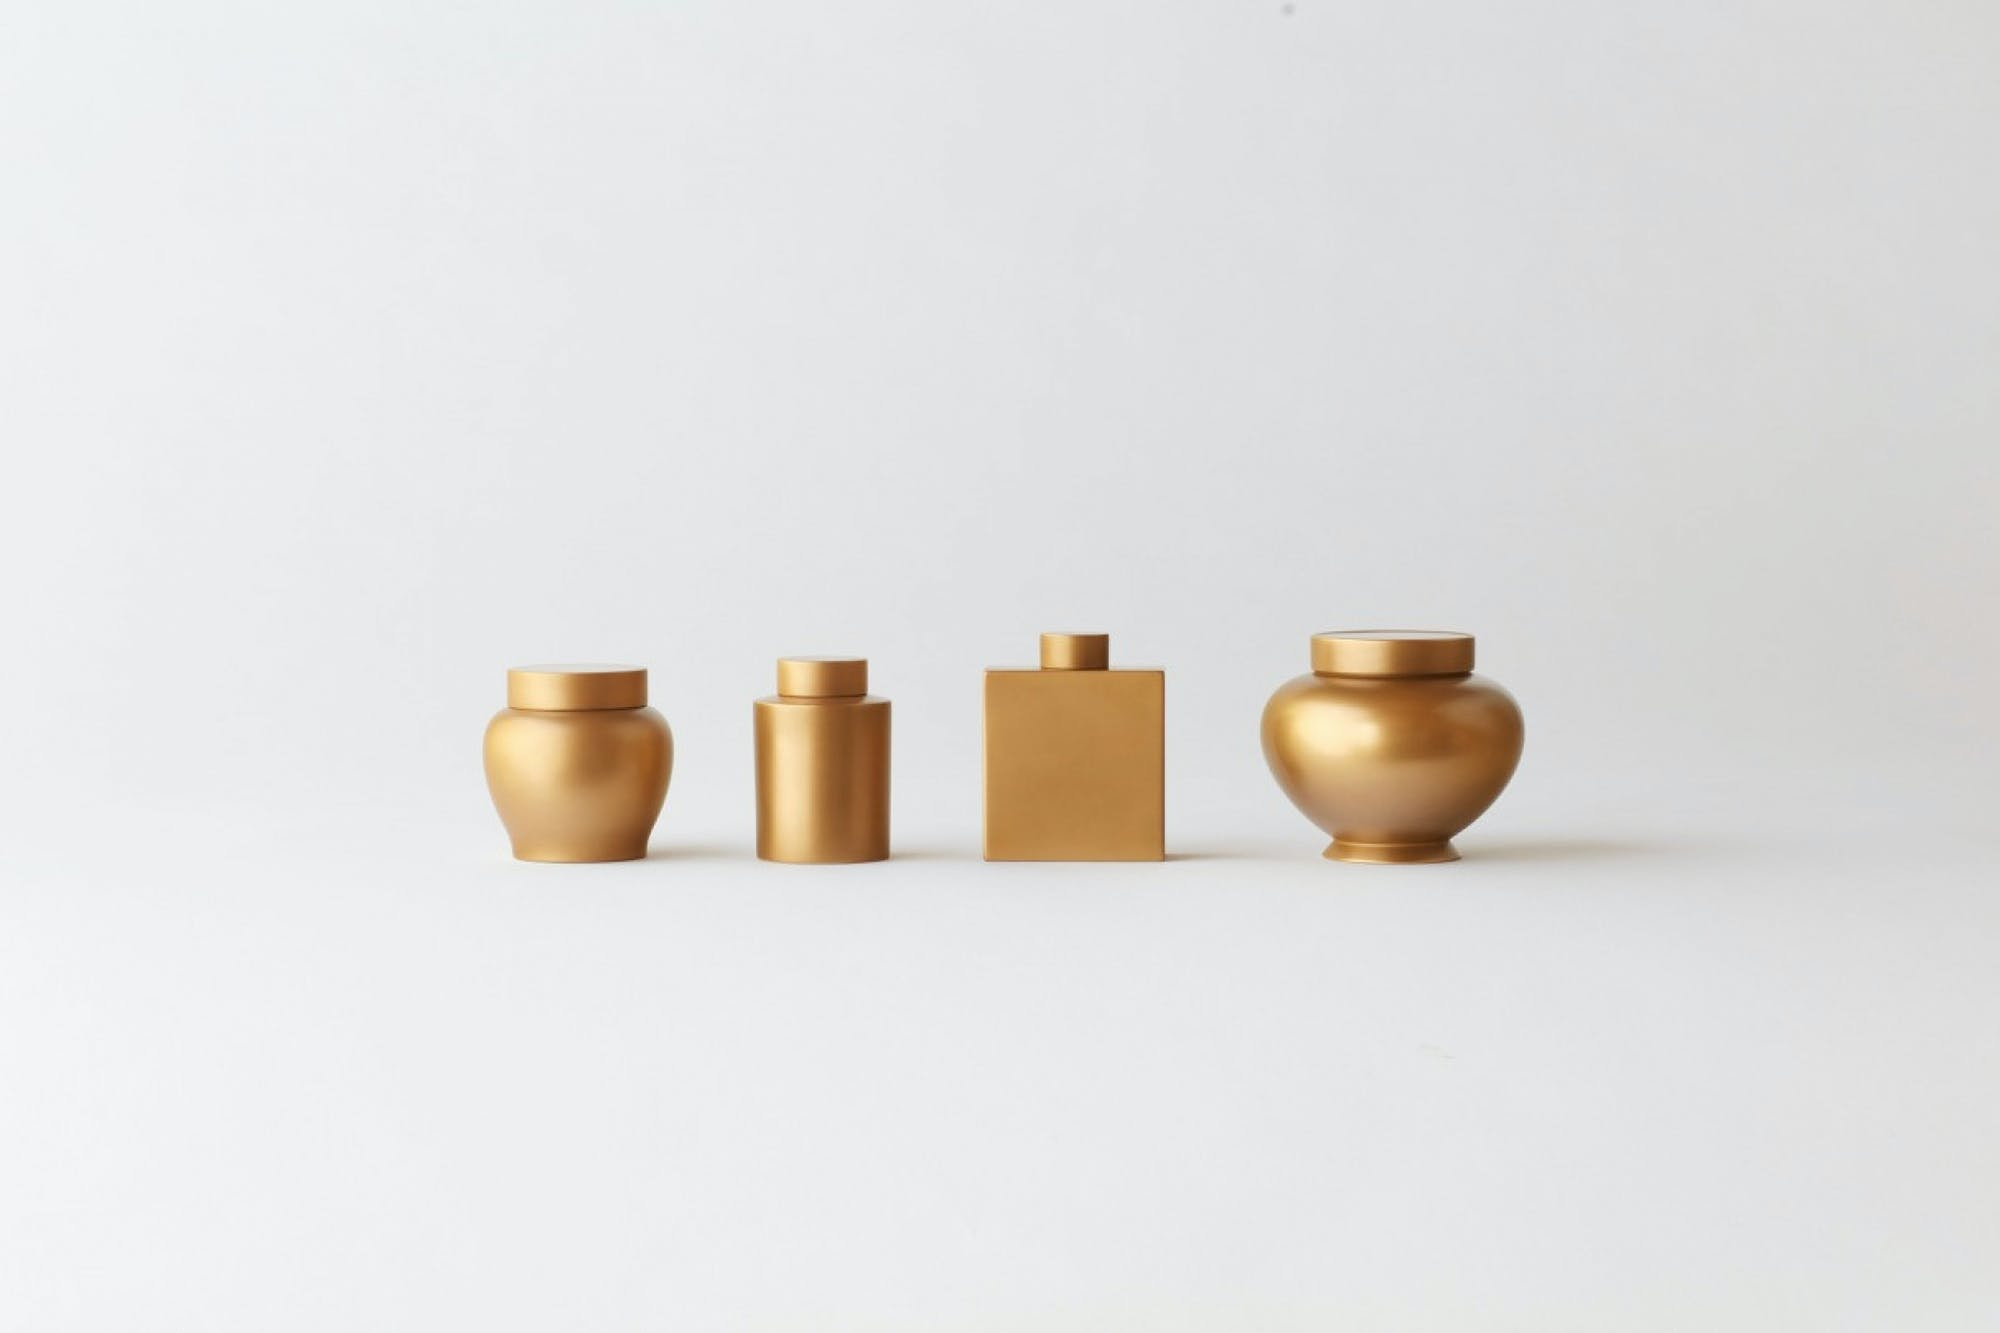 Walpole Insights Contemporary Craft: A Global Movement in the Making